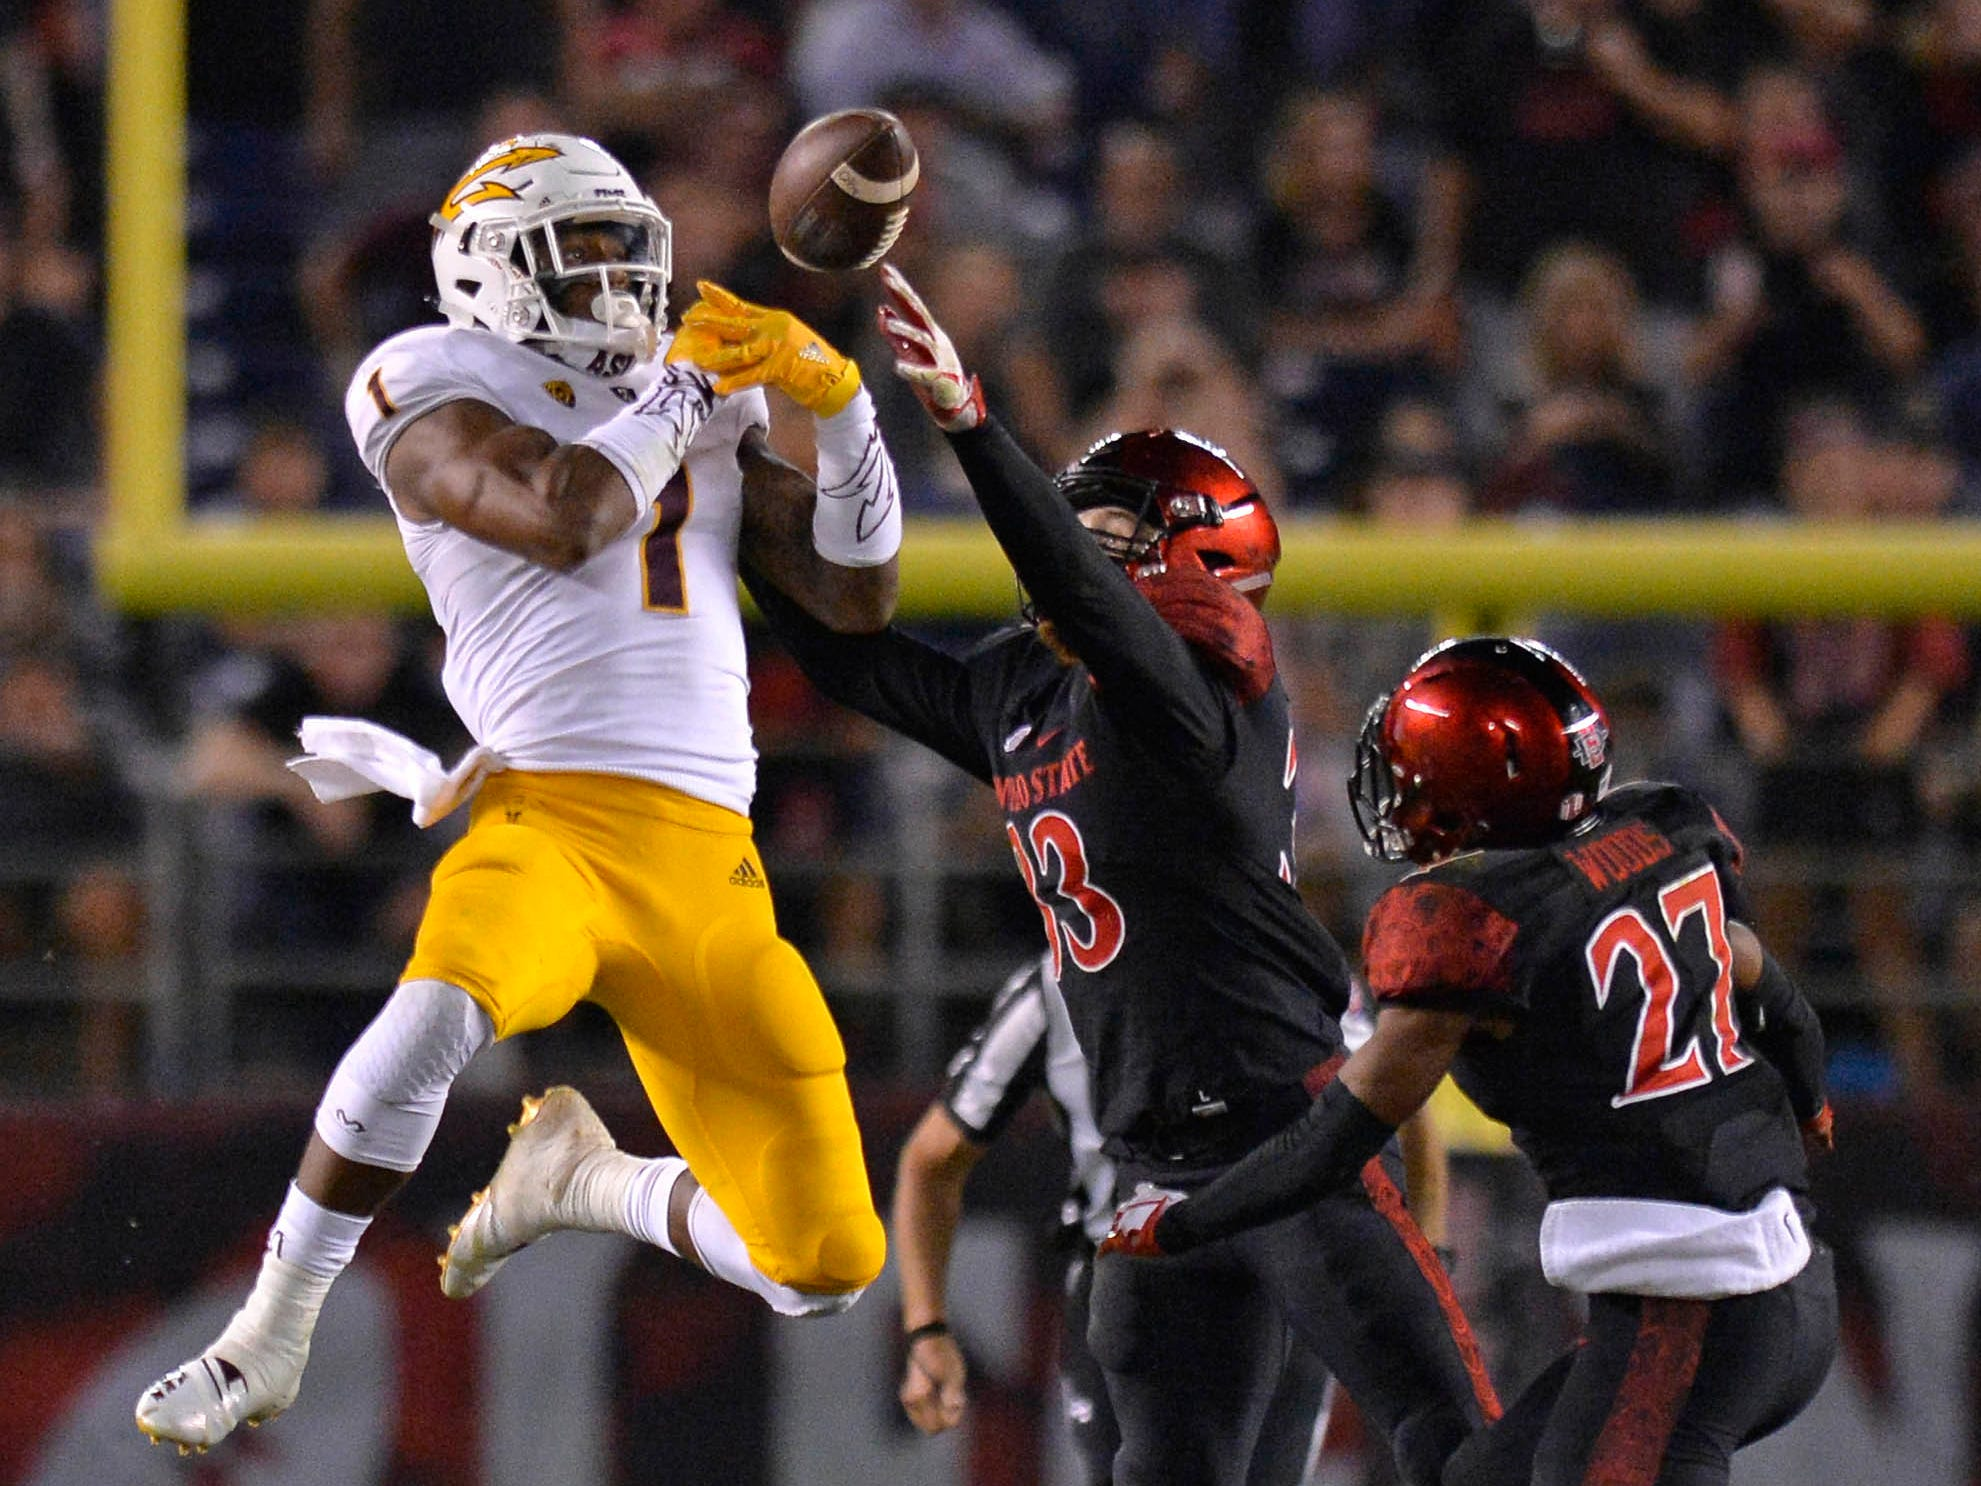 Sep 15, 2018; San Diego, CA, USA; Arizona State Sun Devils wide receiver N'Keal Harry (1) cannot make a catch as San Diego State Aztecs safety Parker Baldwin (33) and cornerback Kyree Woods (27) defend during the fourth quarter at SDCCU Stadium. Mandatory Credit: Jake Roth-USA TODAY Sports